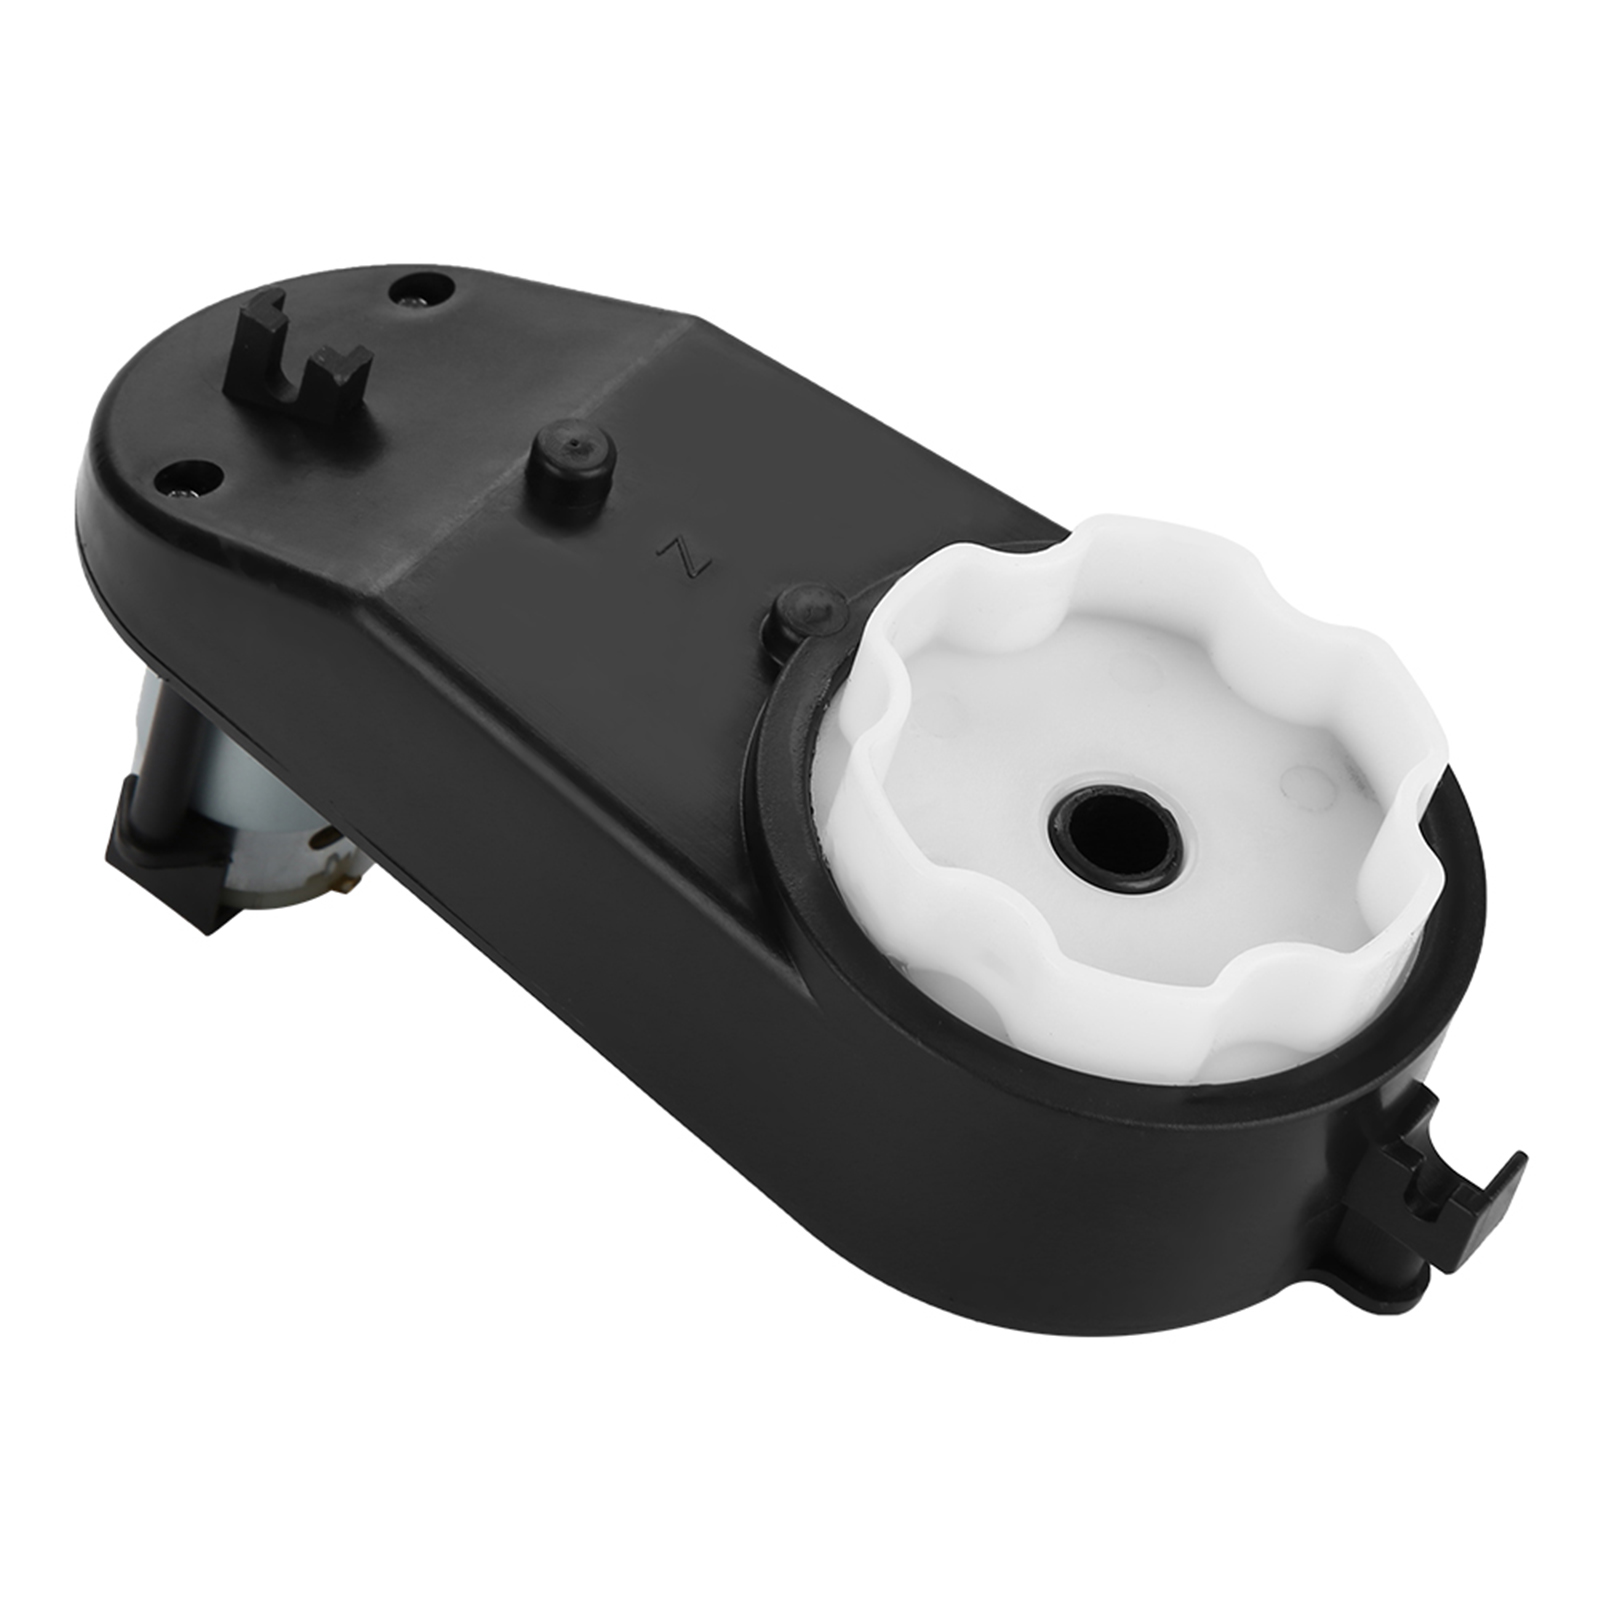 12V-Electric-Motor-Gear-Box-8000-30000RPM-For-Kids-Ride-On-Car-Bike-Toy-Parts thumbnail 21